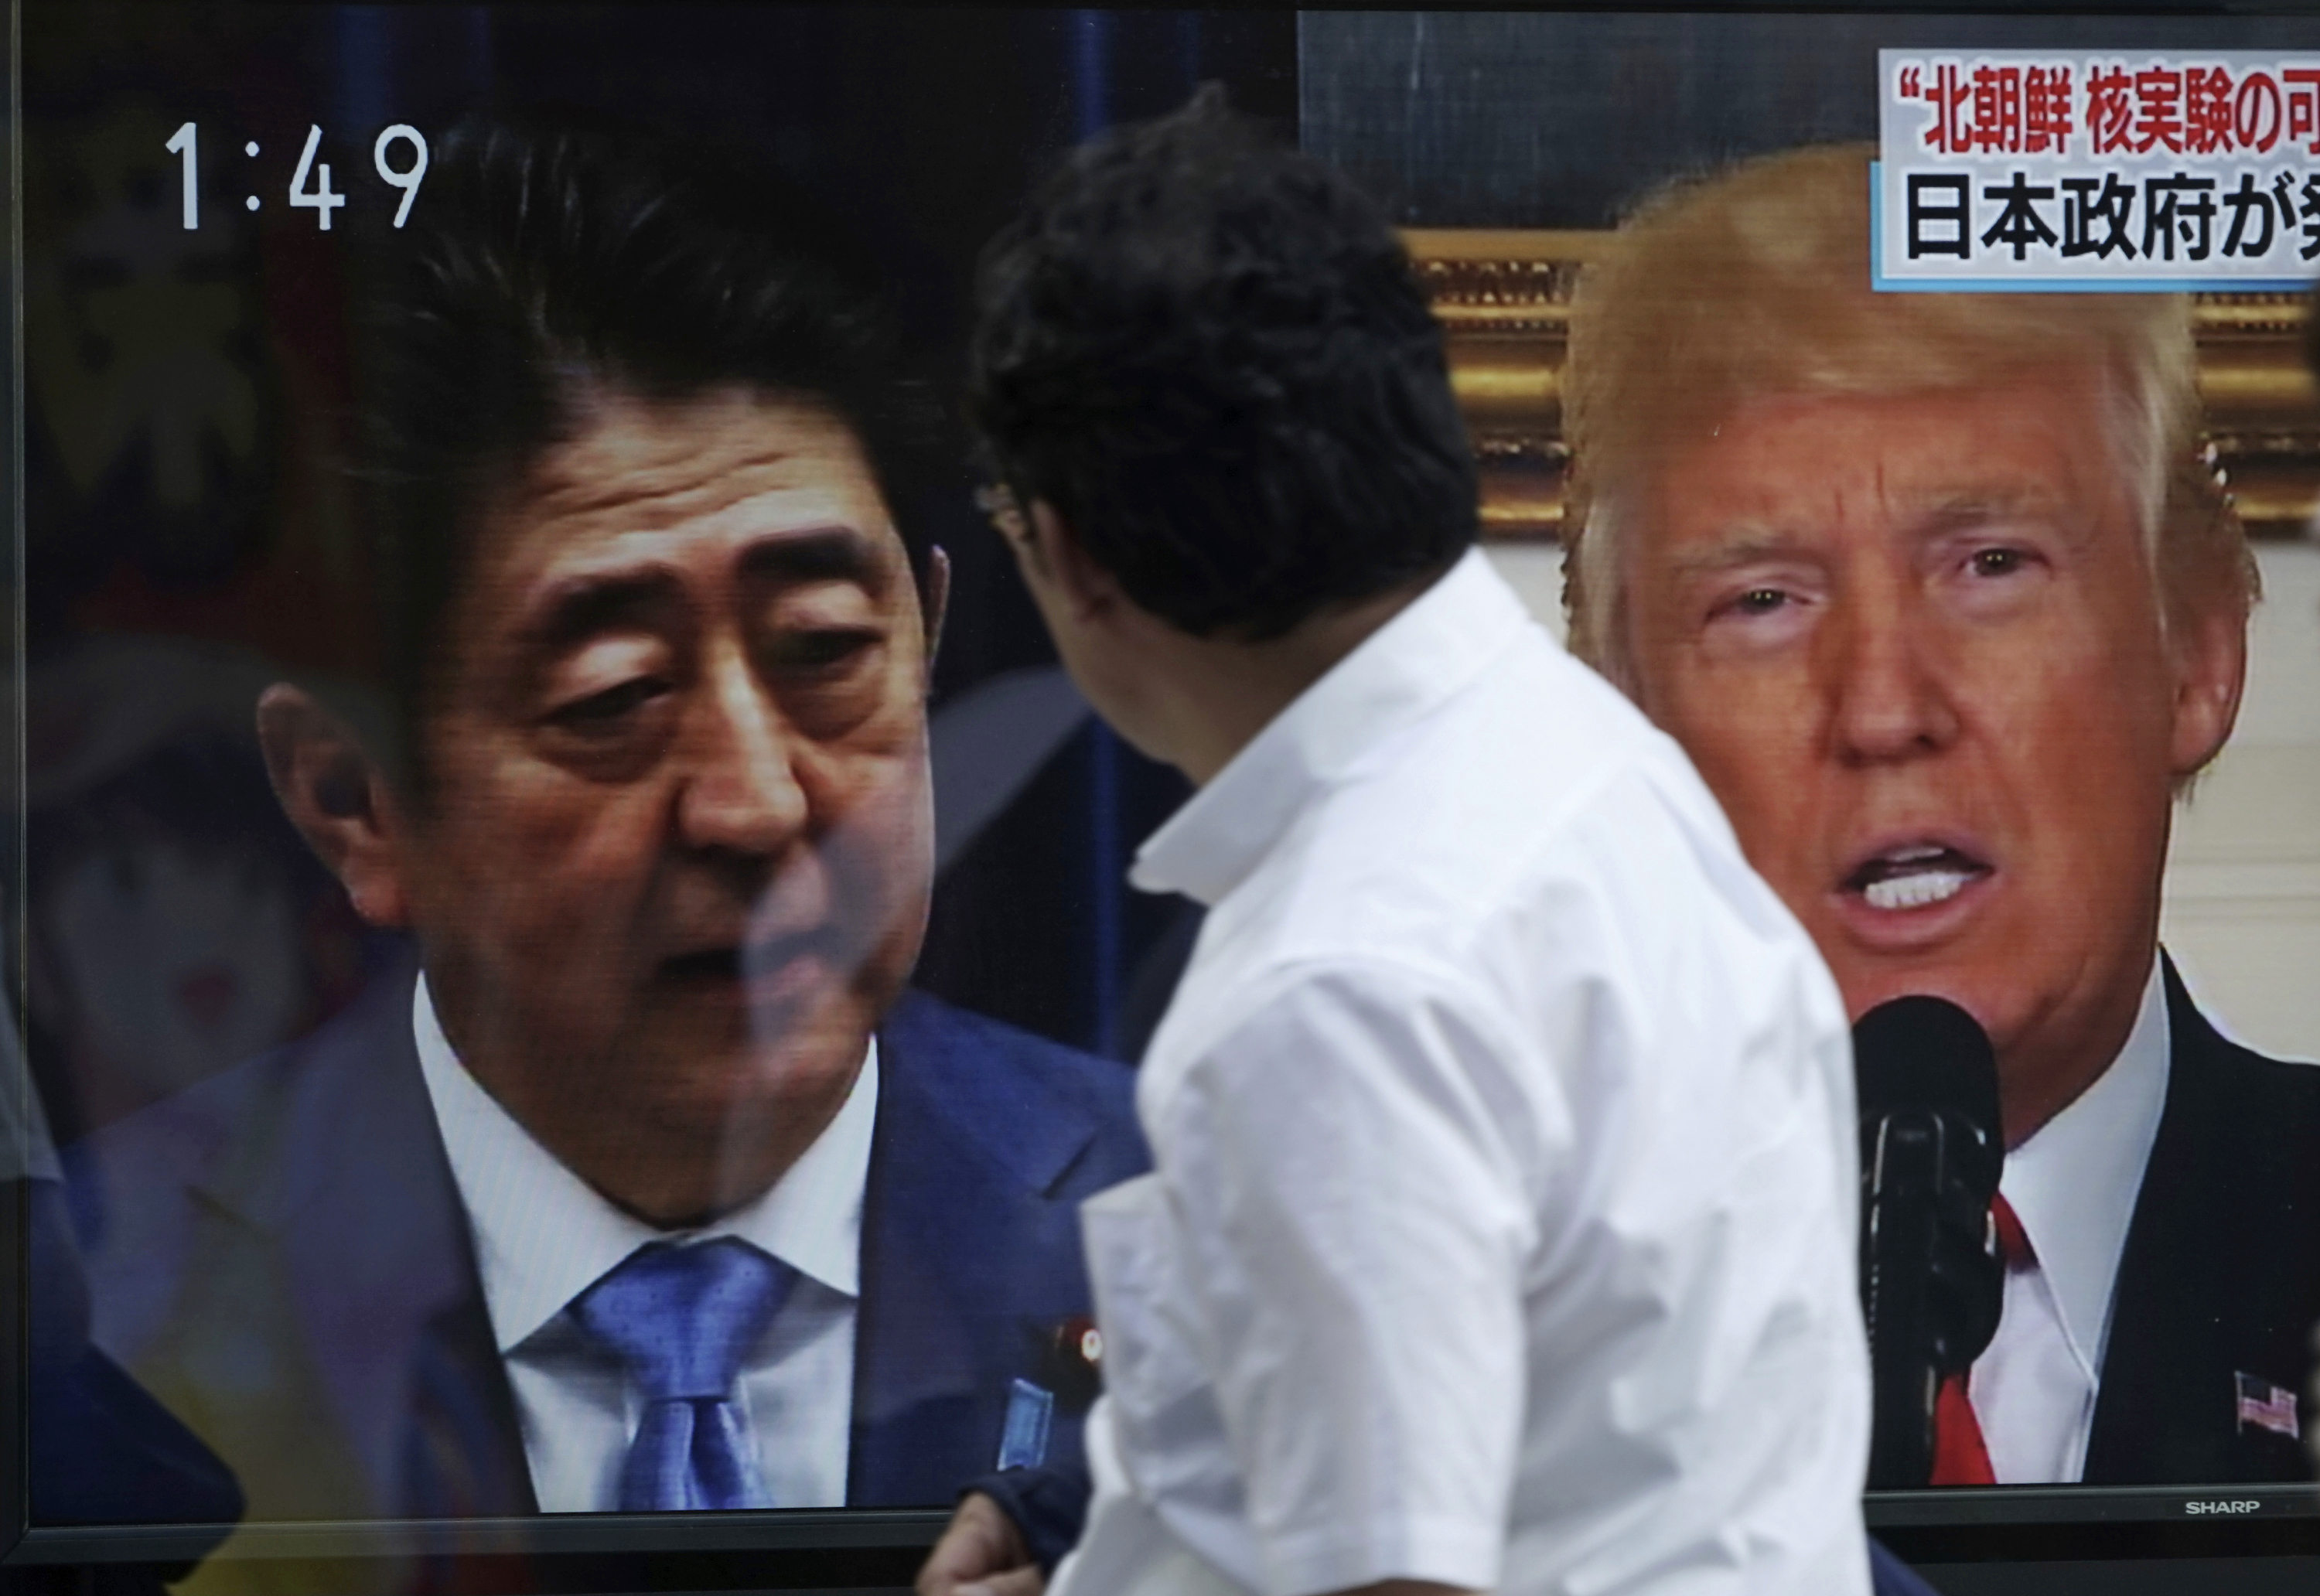 Donald Trump and Shinzo Abe on screens